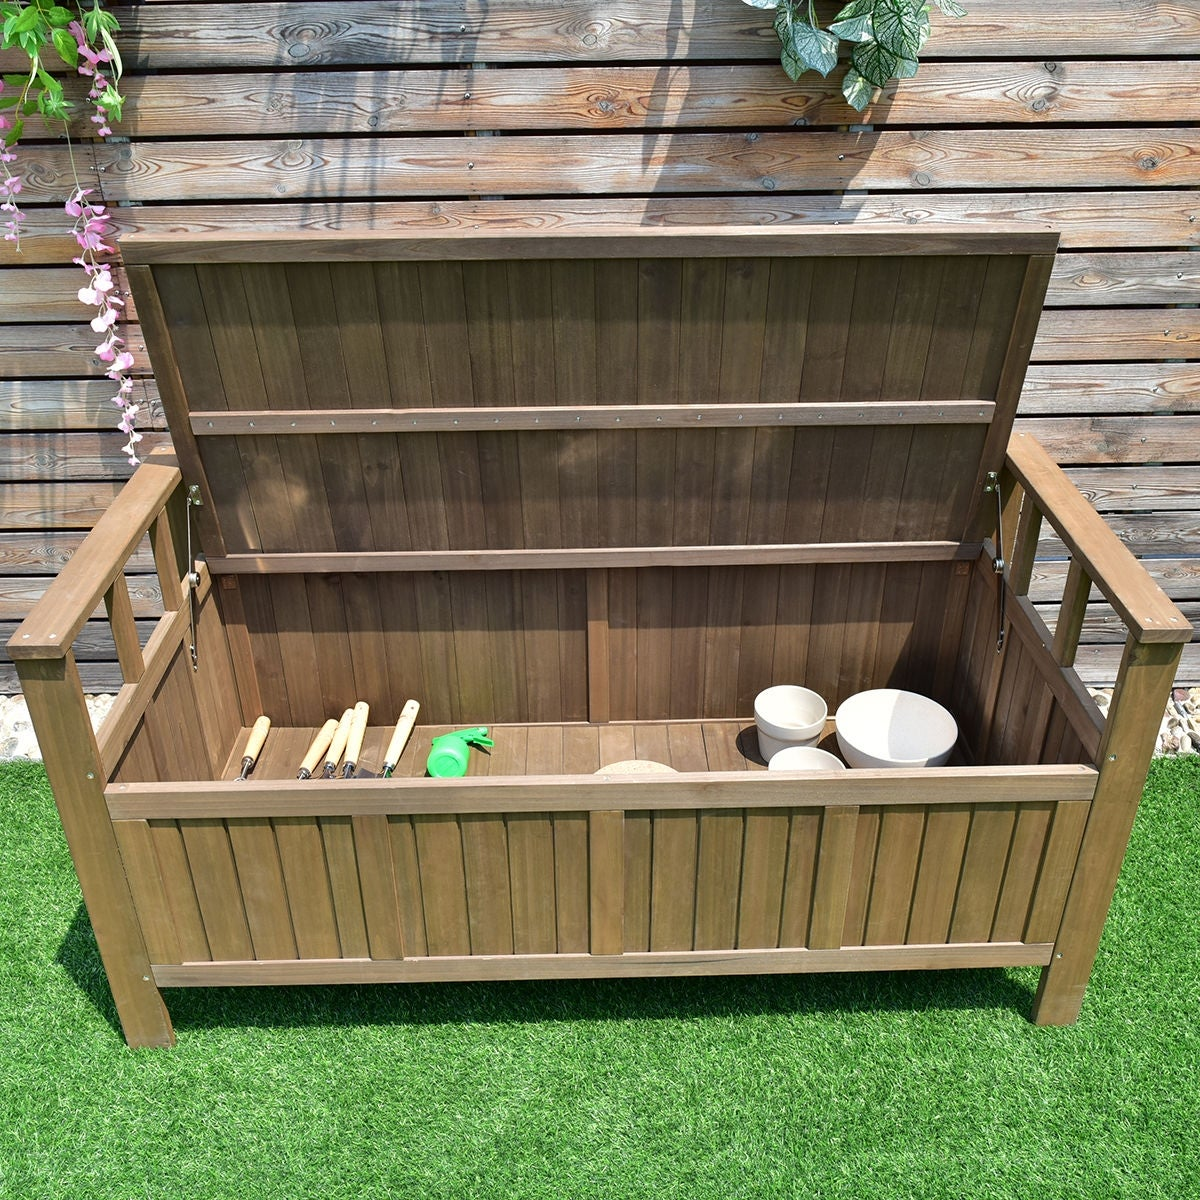 Magnificent Costway 70 Gallon All Weather Outdoor Patio Storage Garden Bench Deck Box As Pic Evergreenethics Interior Chair Design Evergreenethicsorg